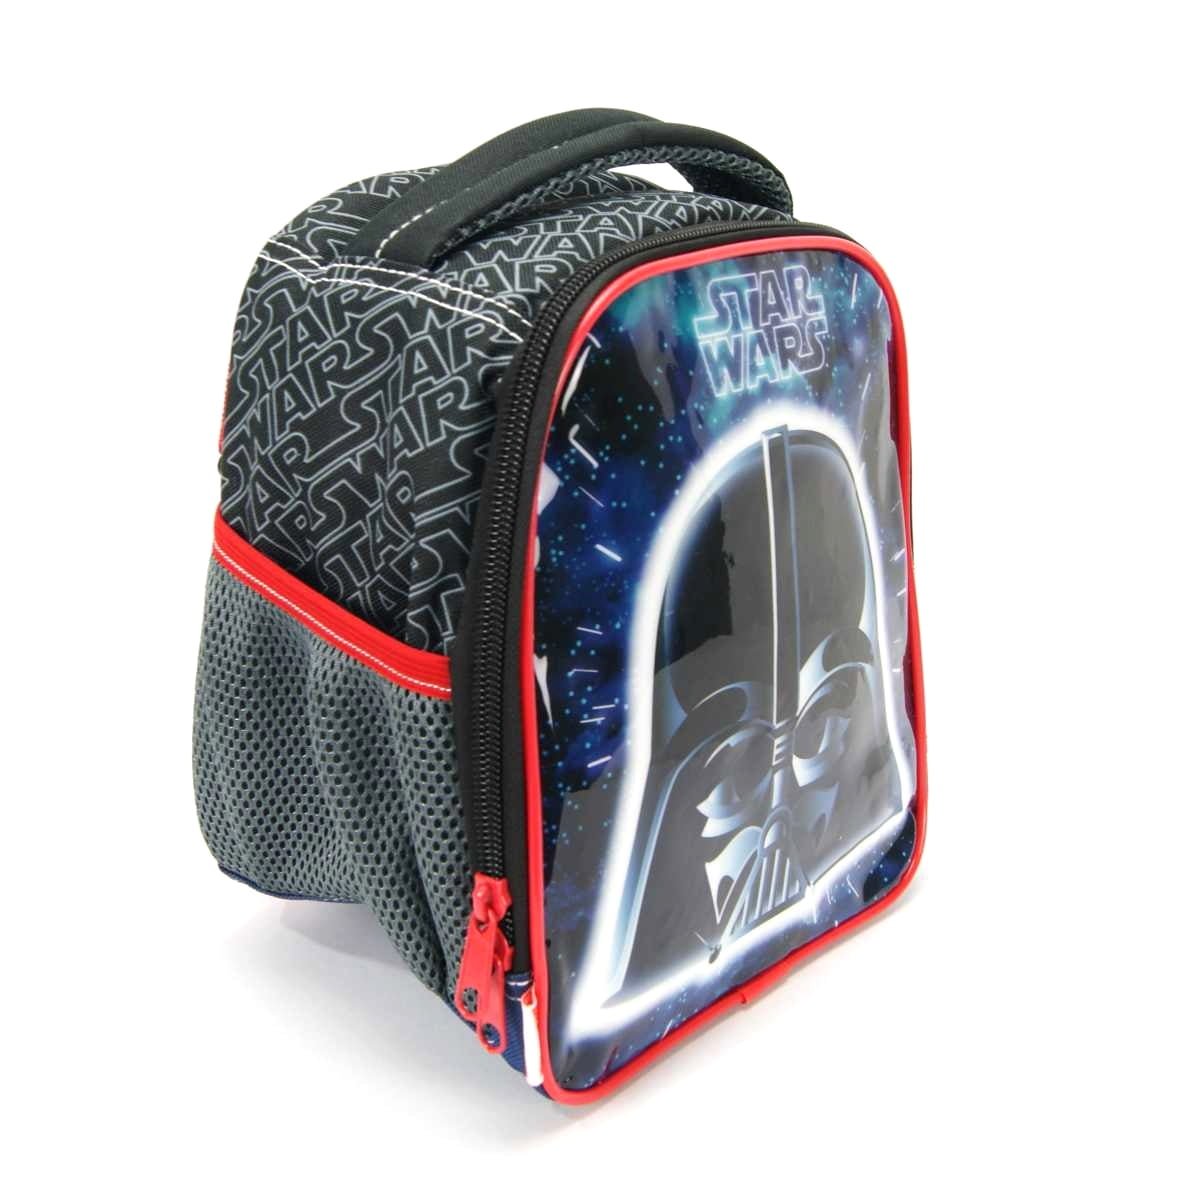 Lancheira Star Wars Darth Vader 18X Sestini 065095